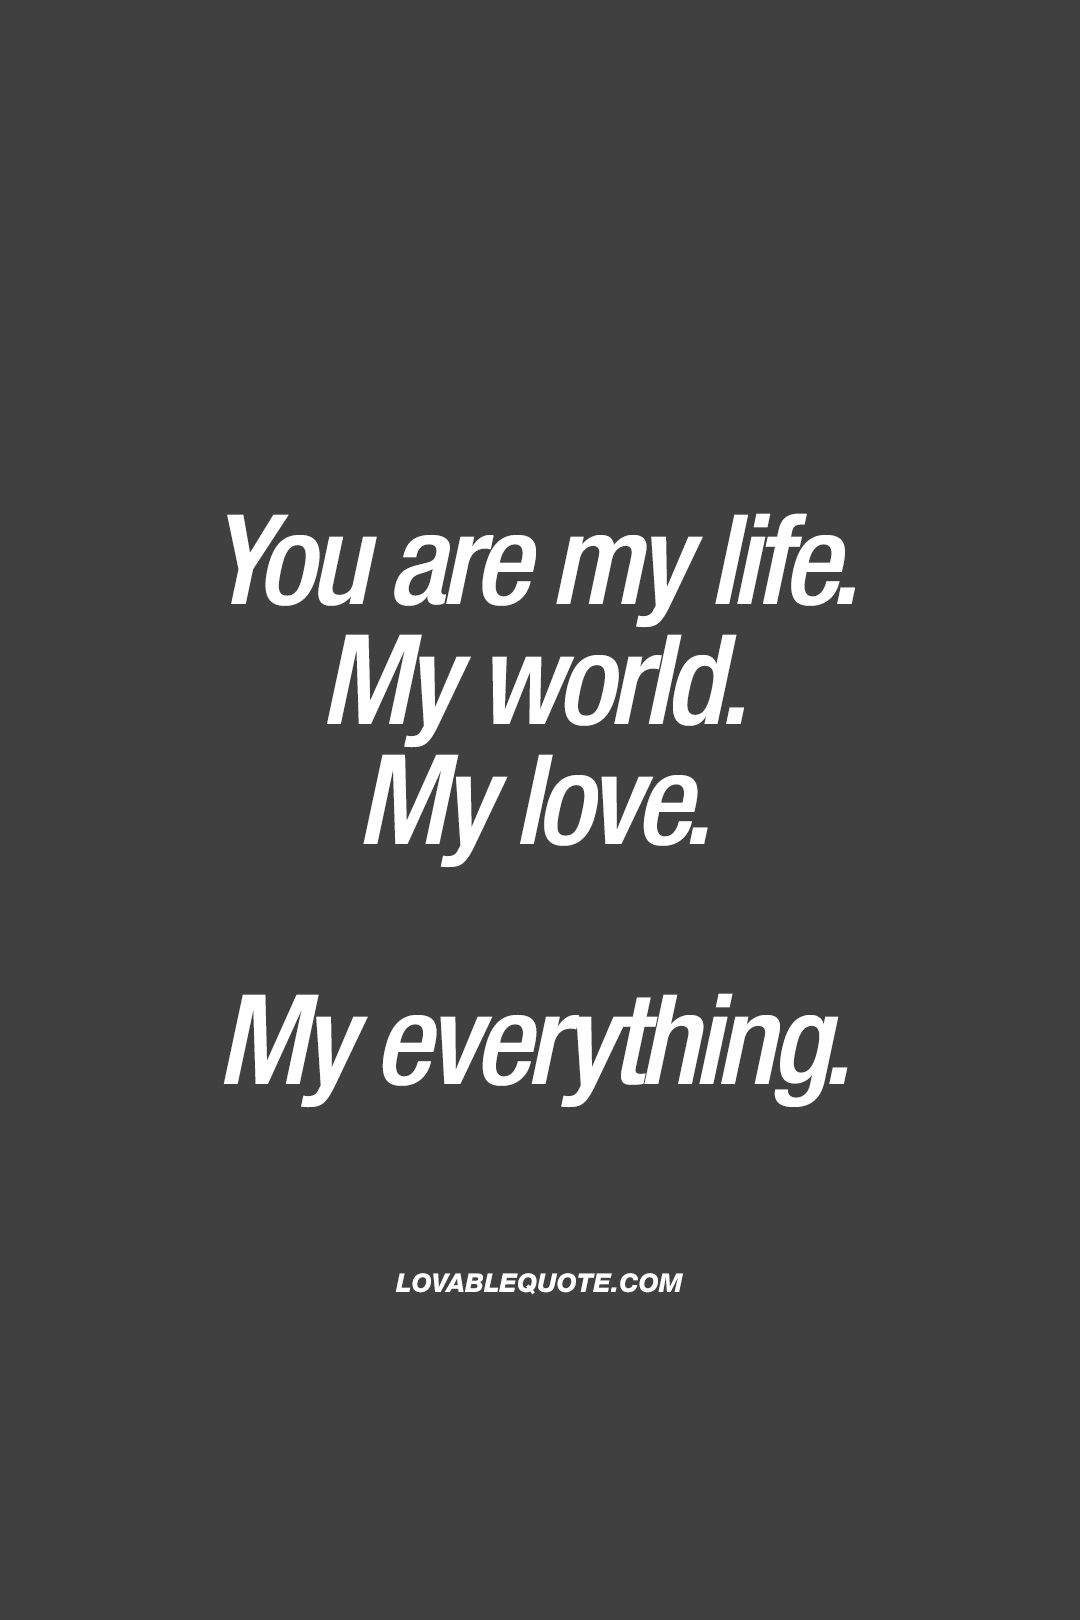 Quote for him or her: You are my life. My world. My love. My